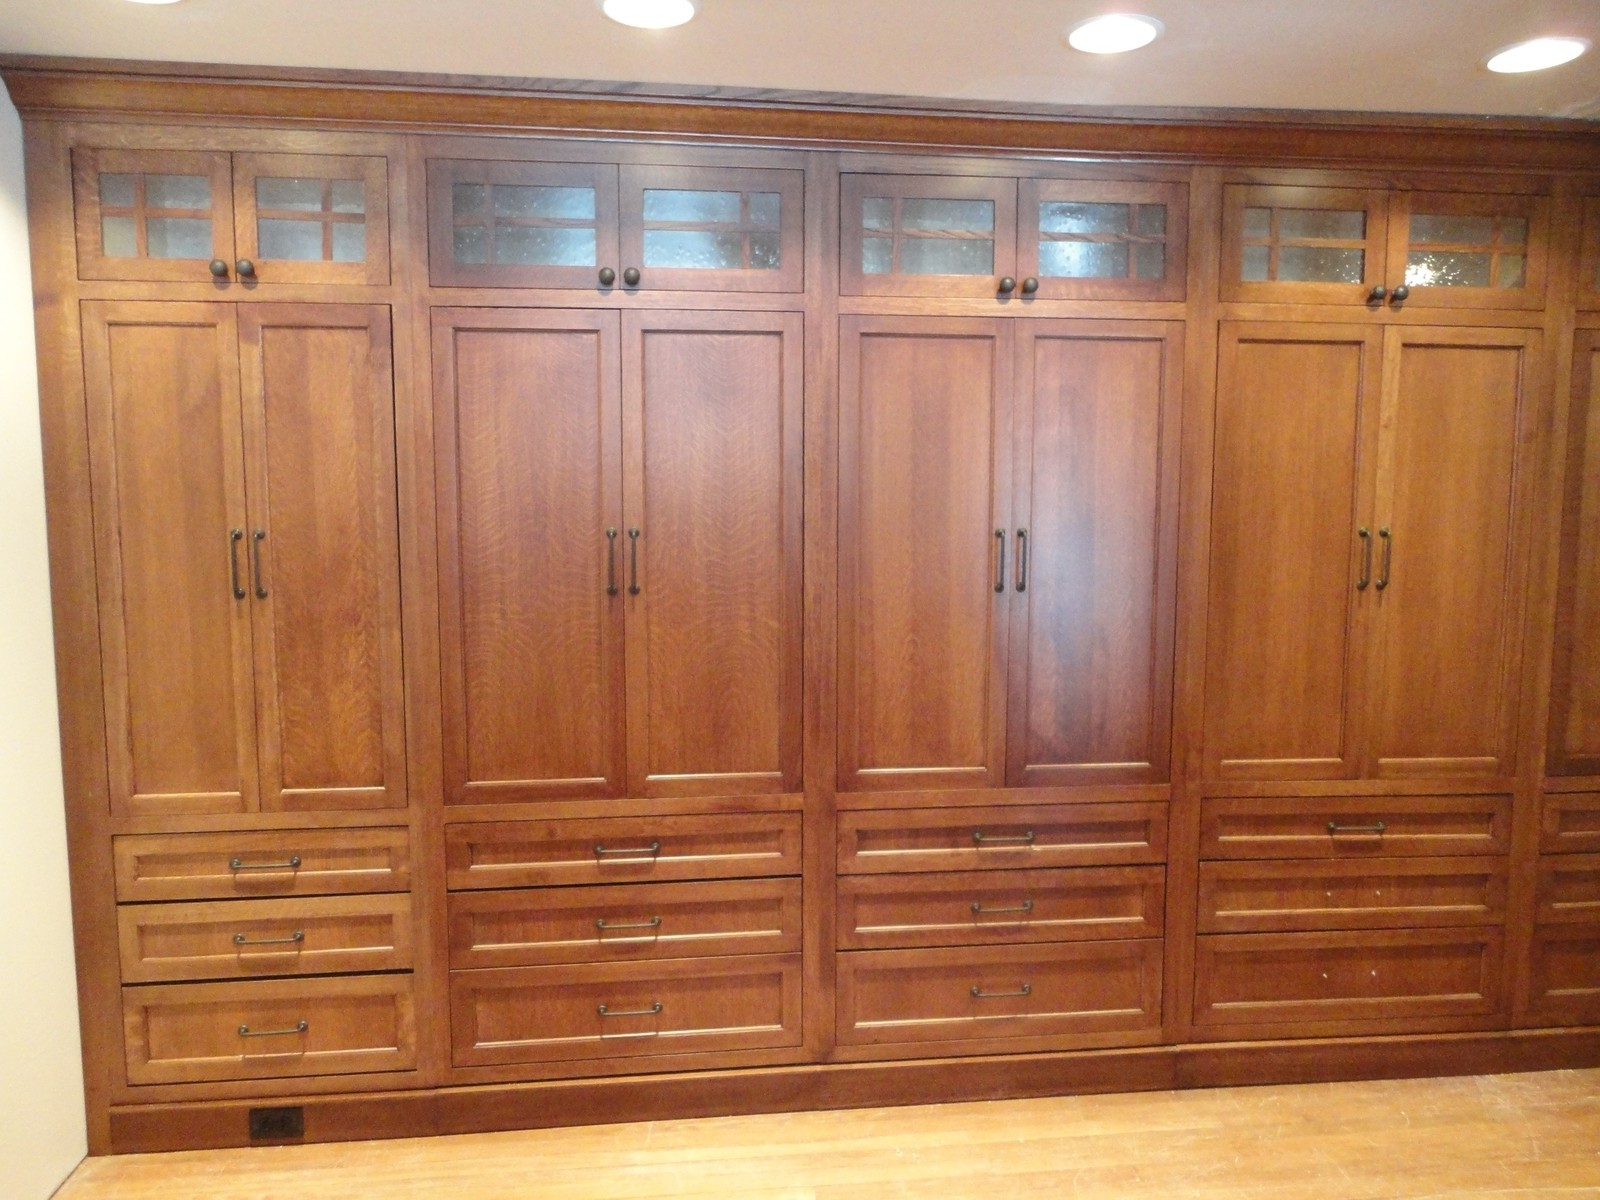 Large Wooden Wardrobes With Favorite High Cream Wooden Wardrobe With Sliding Door Also Shelves Inside (View 7 of 15)